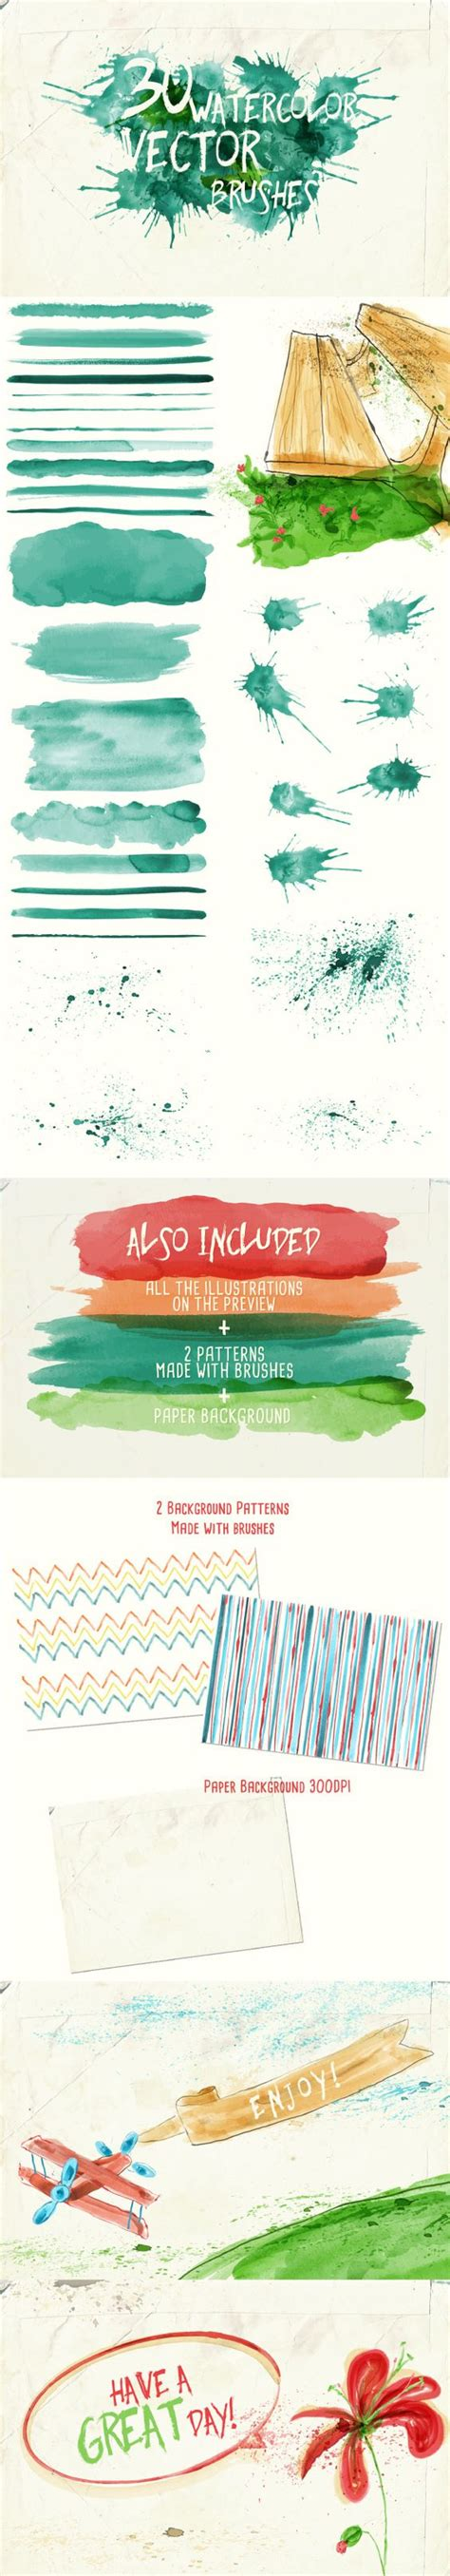 watercolor pattern illustrator download watercolor vector art brushes adobe design and brushes